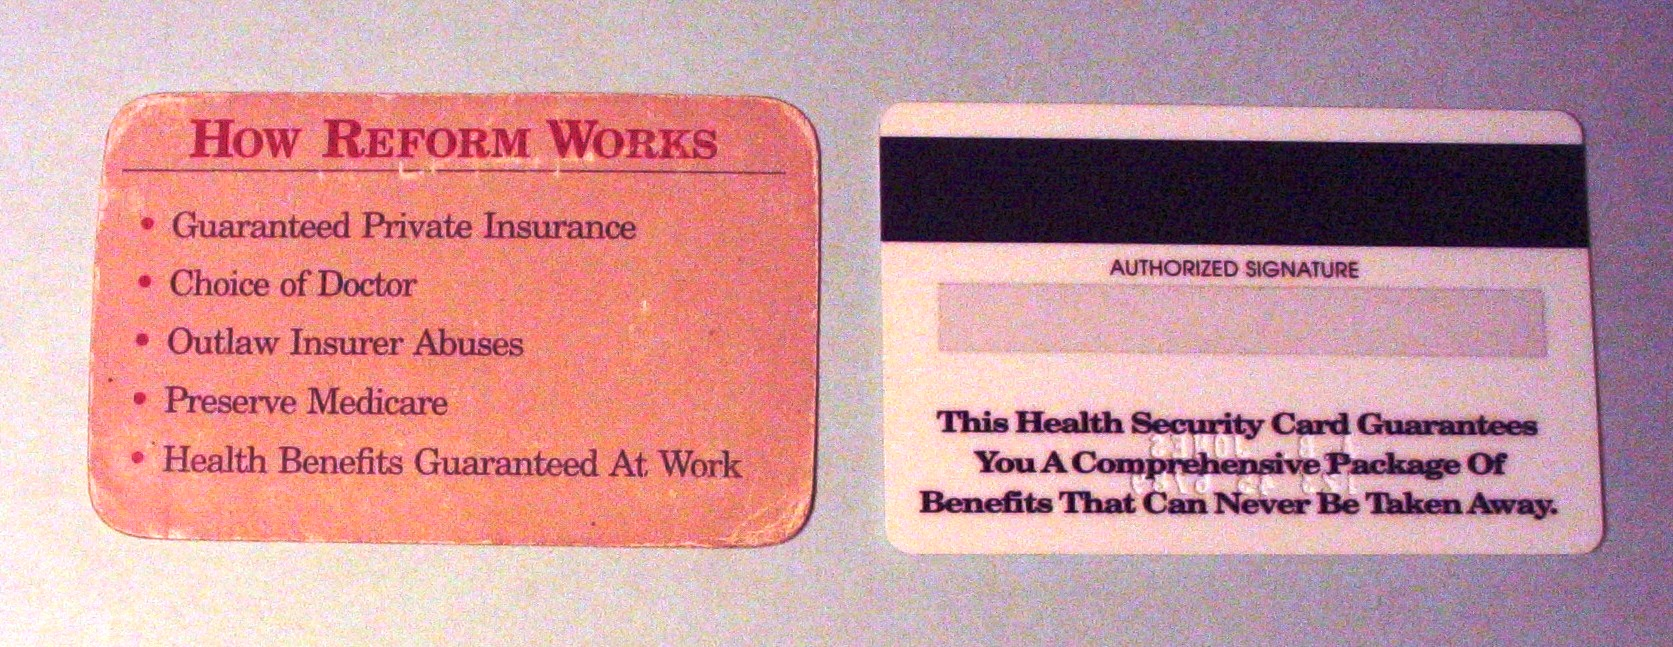 Health Security Cards - Back (1993)